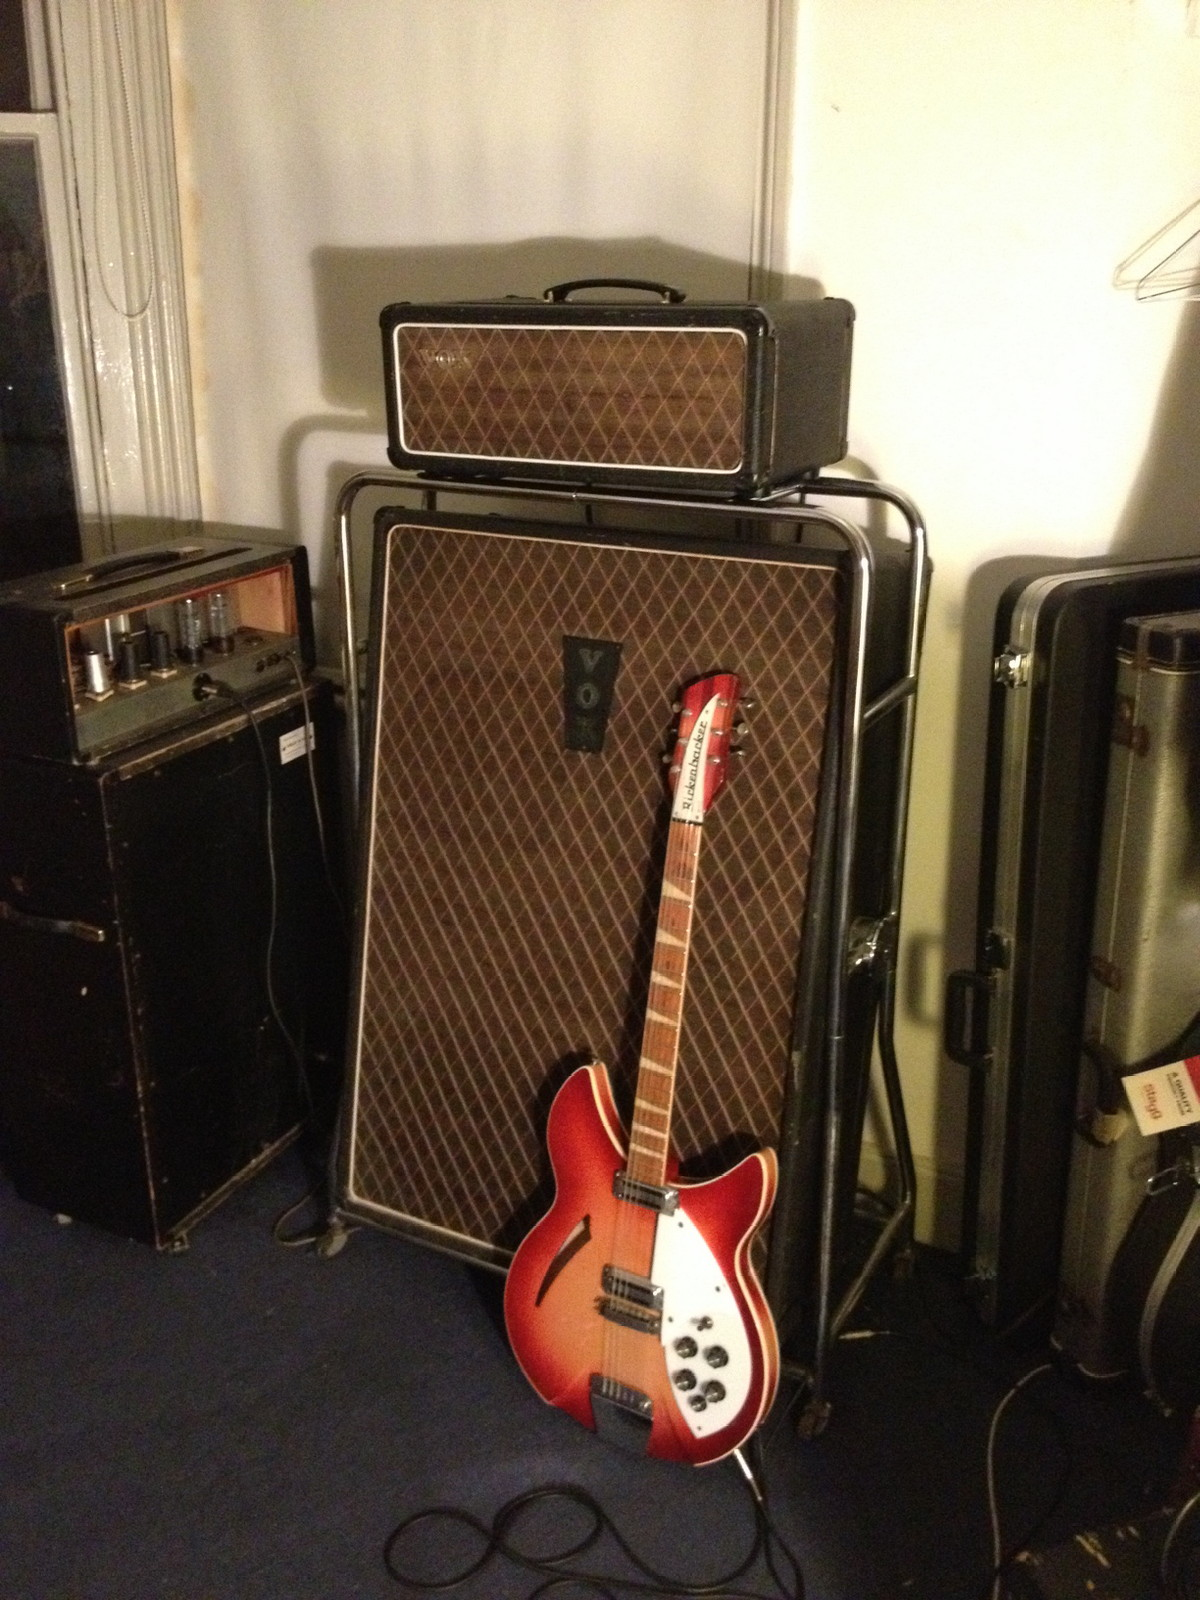 Rickenbacker owned by James.